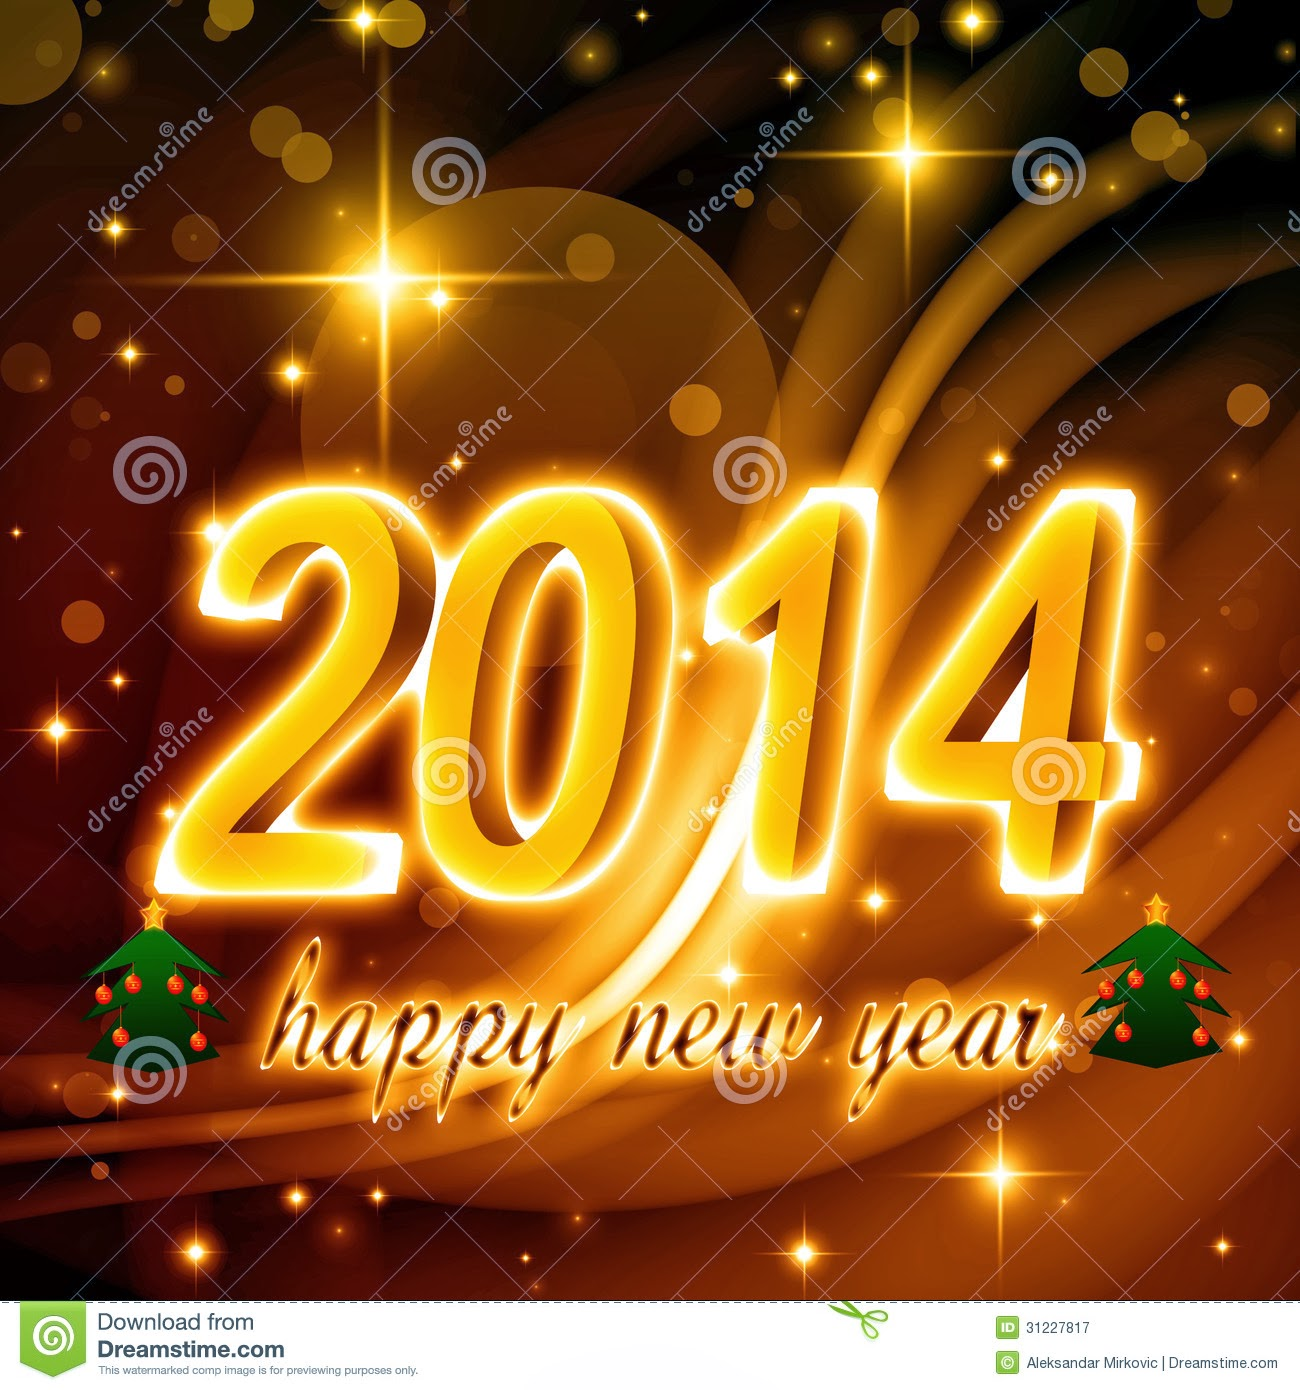 happy new year 2014 greetings happy new year 2014 greetings. 1300 x 1390.Christian New Years Ecards